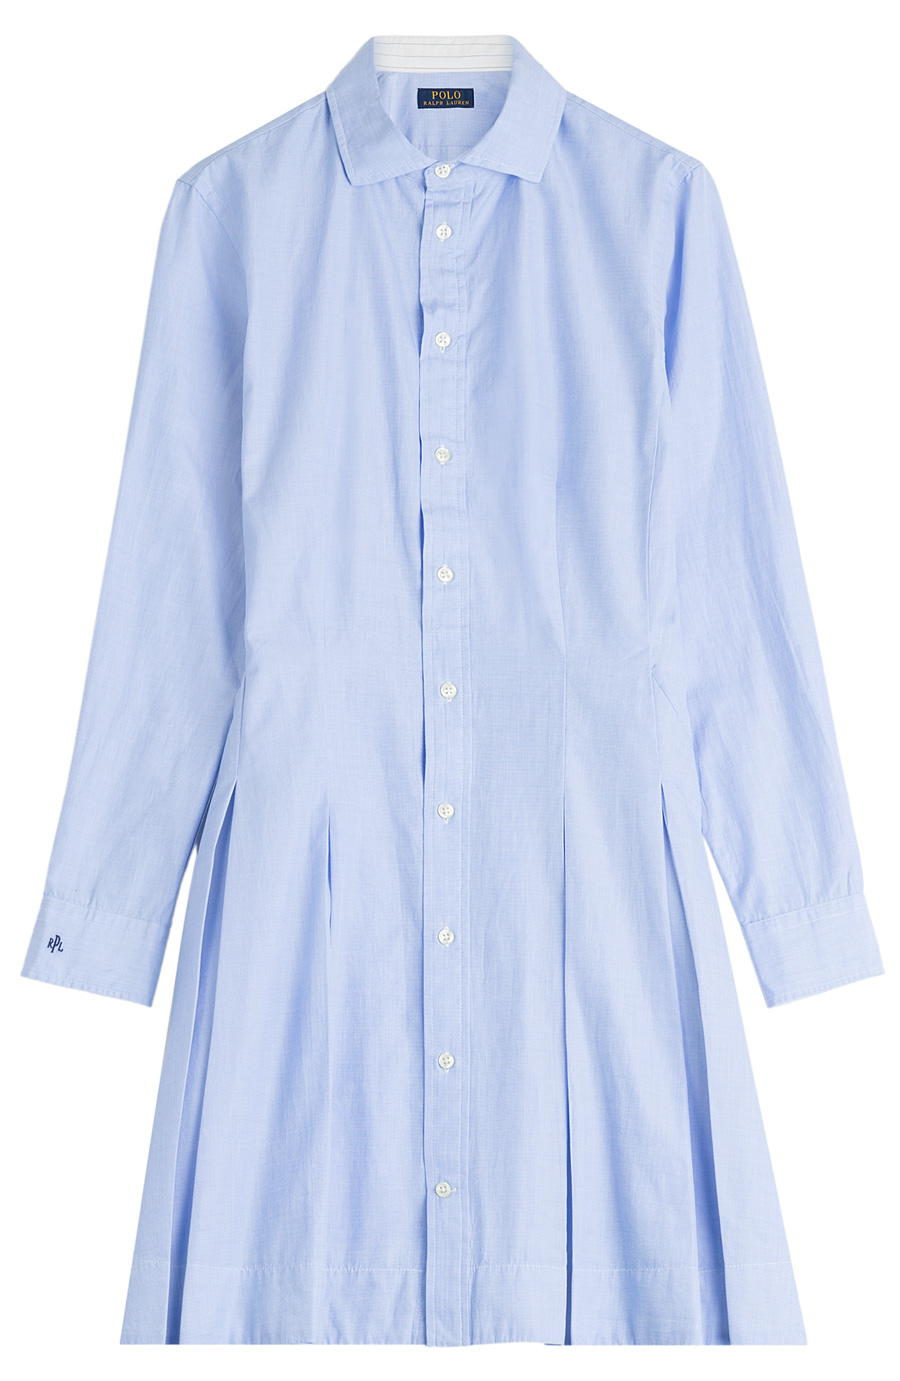 Long Sleeve Cotton Lauren Ralph Polo Charlotte Dress Casual rQdsxhCt